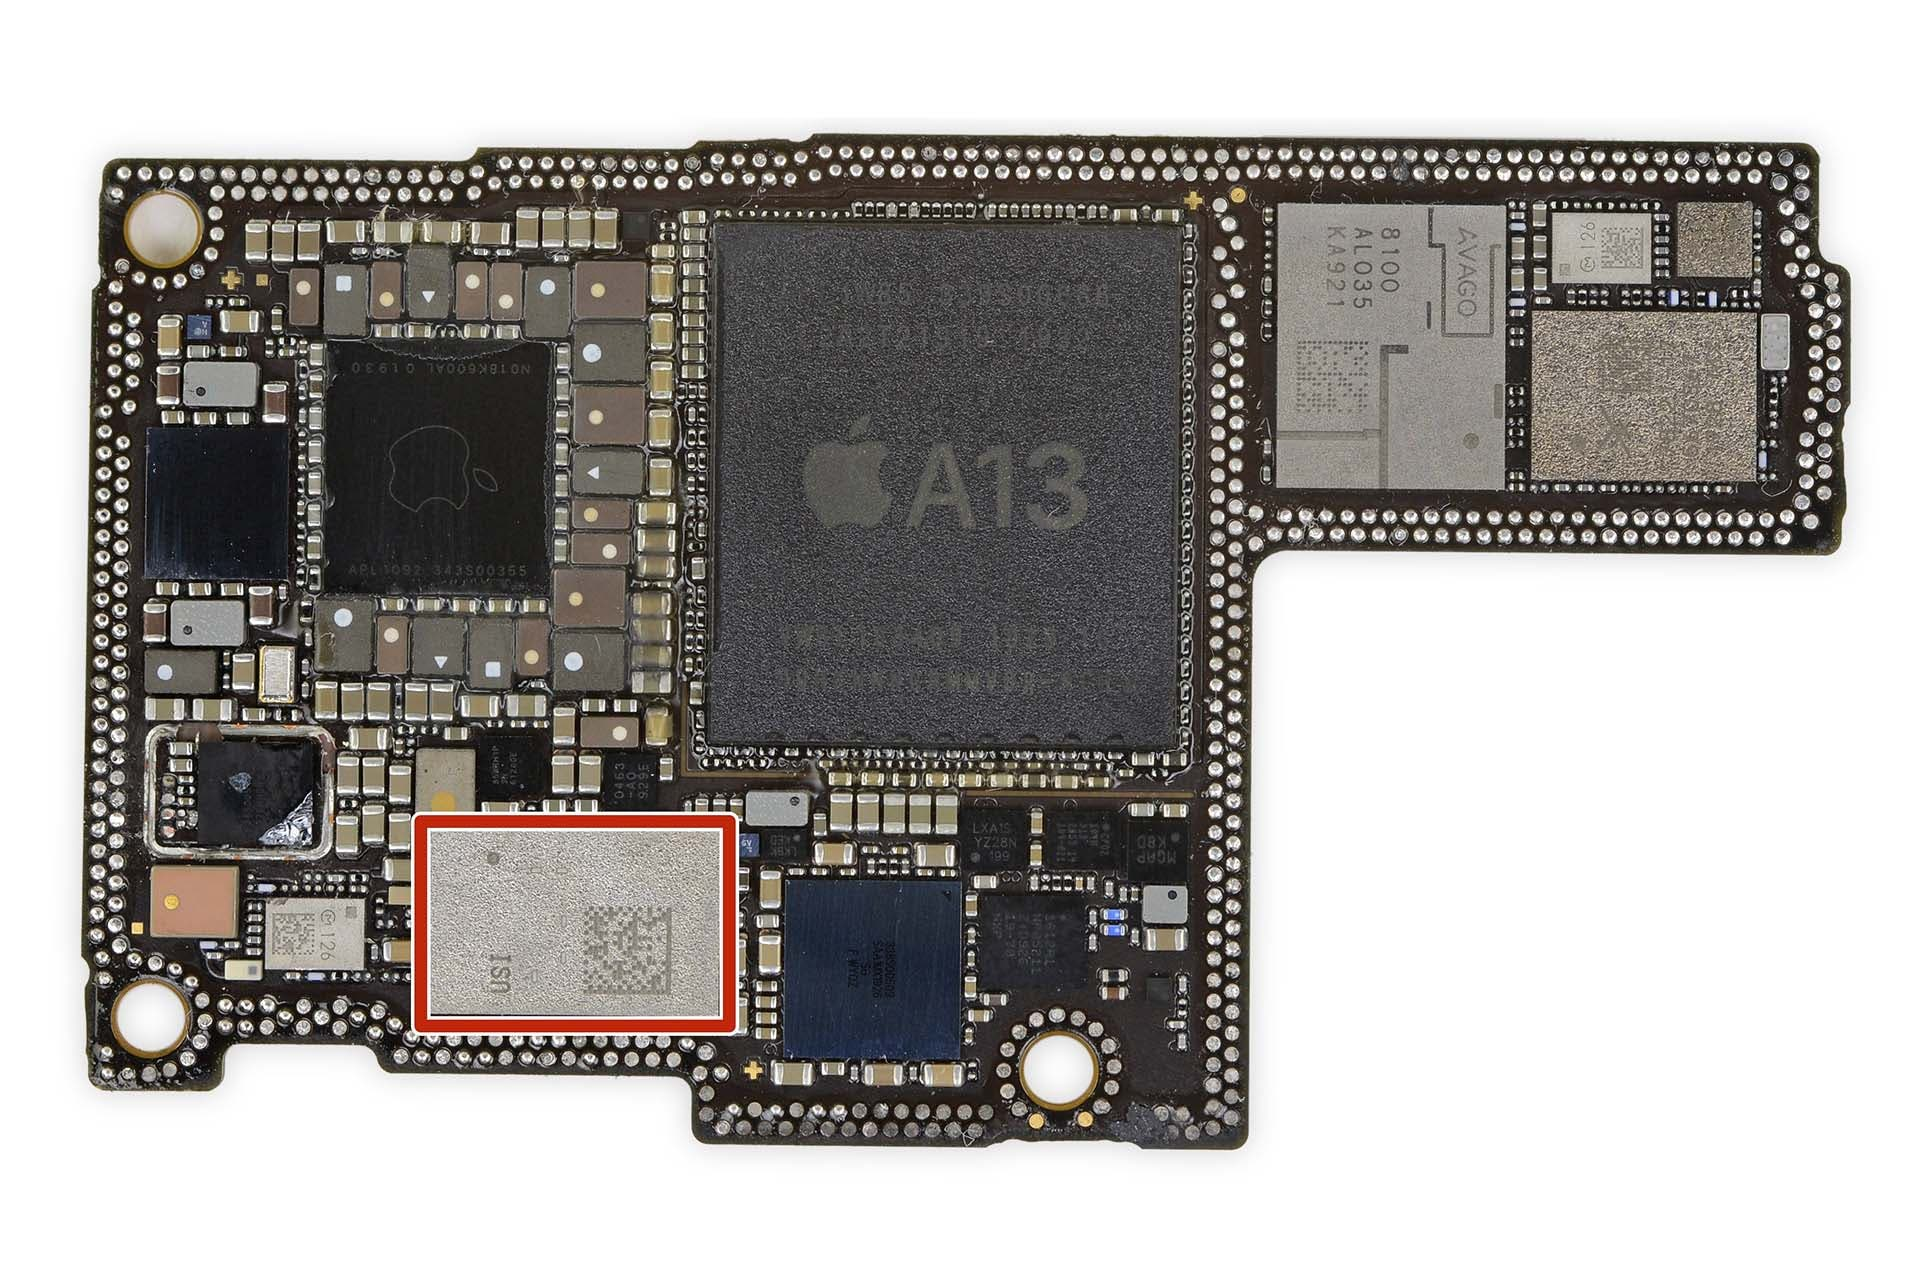 Apple U1 chip